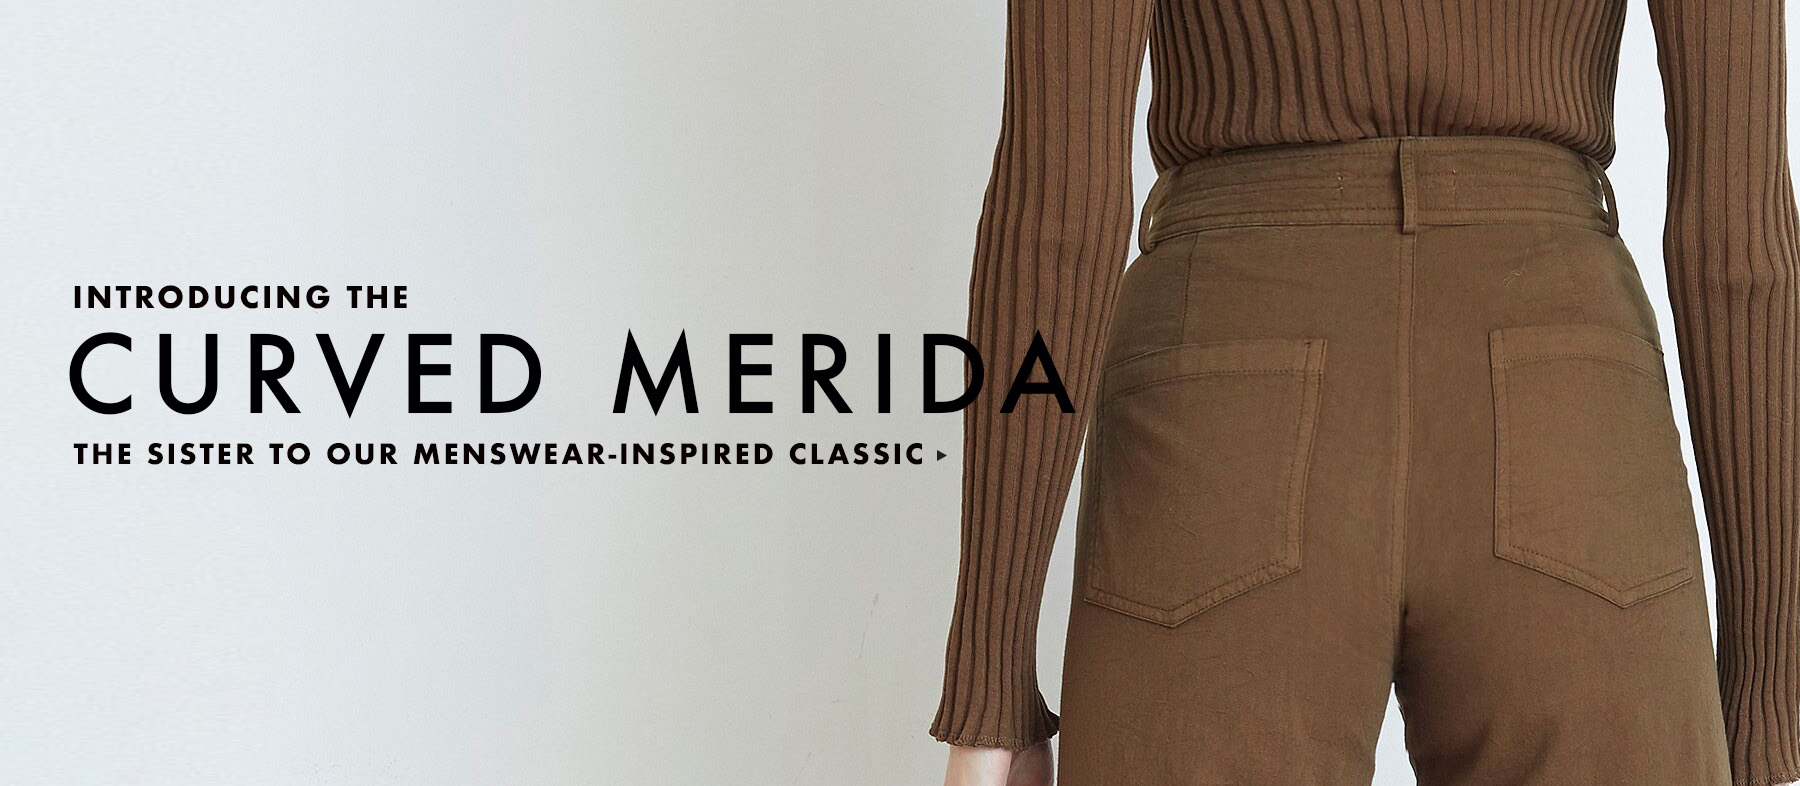 The New Curved Merida Pant